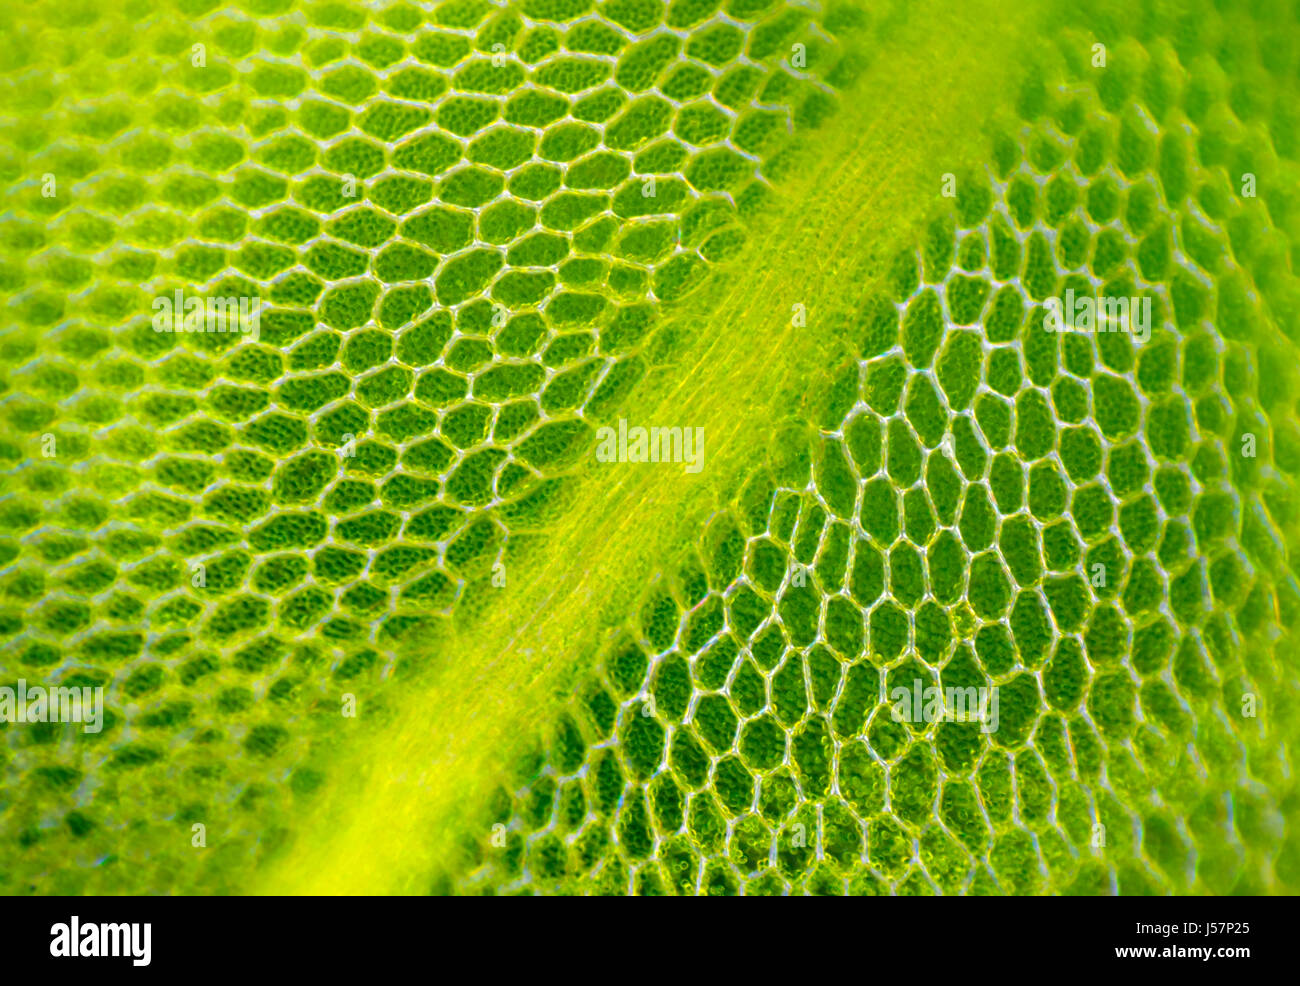 plant cell chloroplast stock photos plant cell. Black Bedroom Furniture Sets. Home Design Ideas